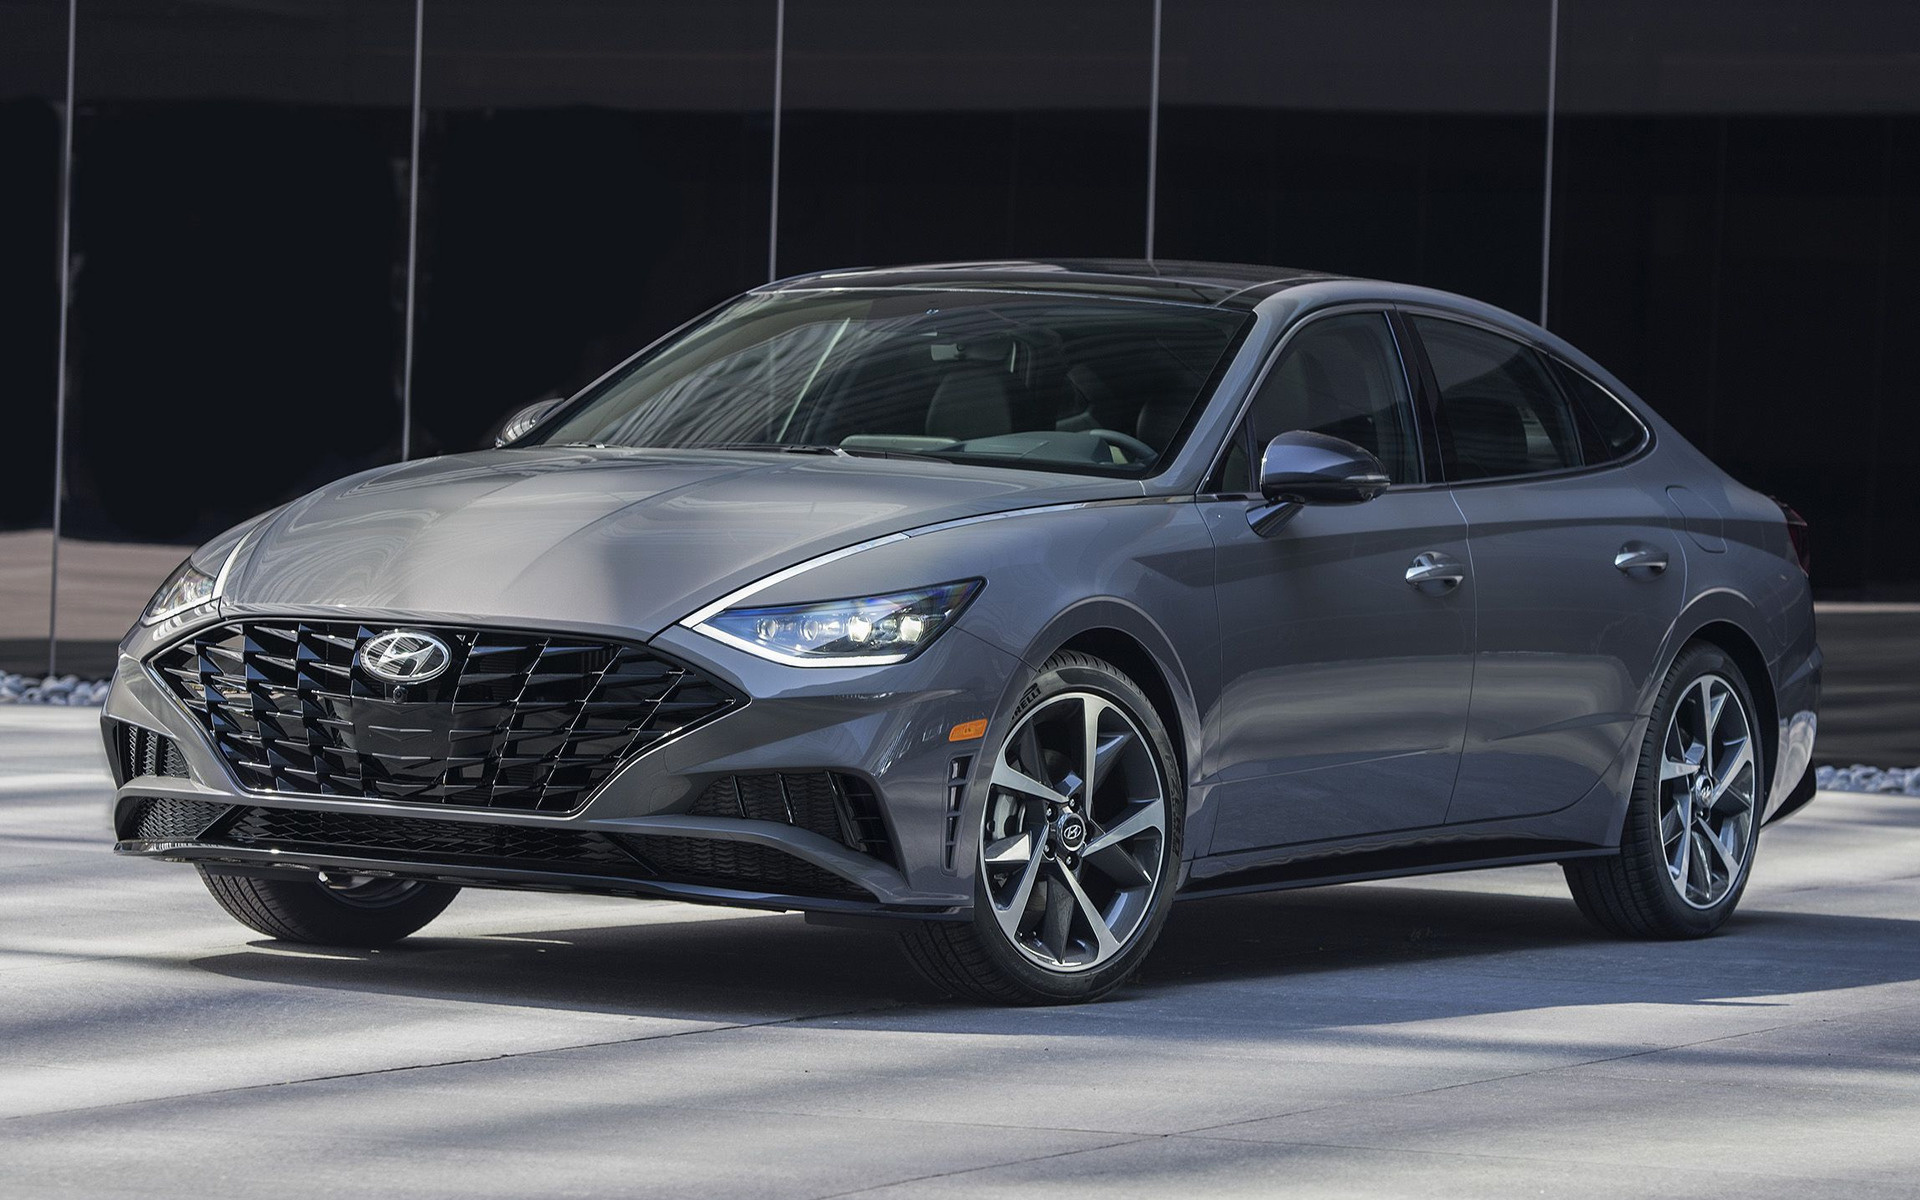 2020 Hyundai Sonata Sport Styling Wallpapers And Hd Images Car Pixel